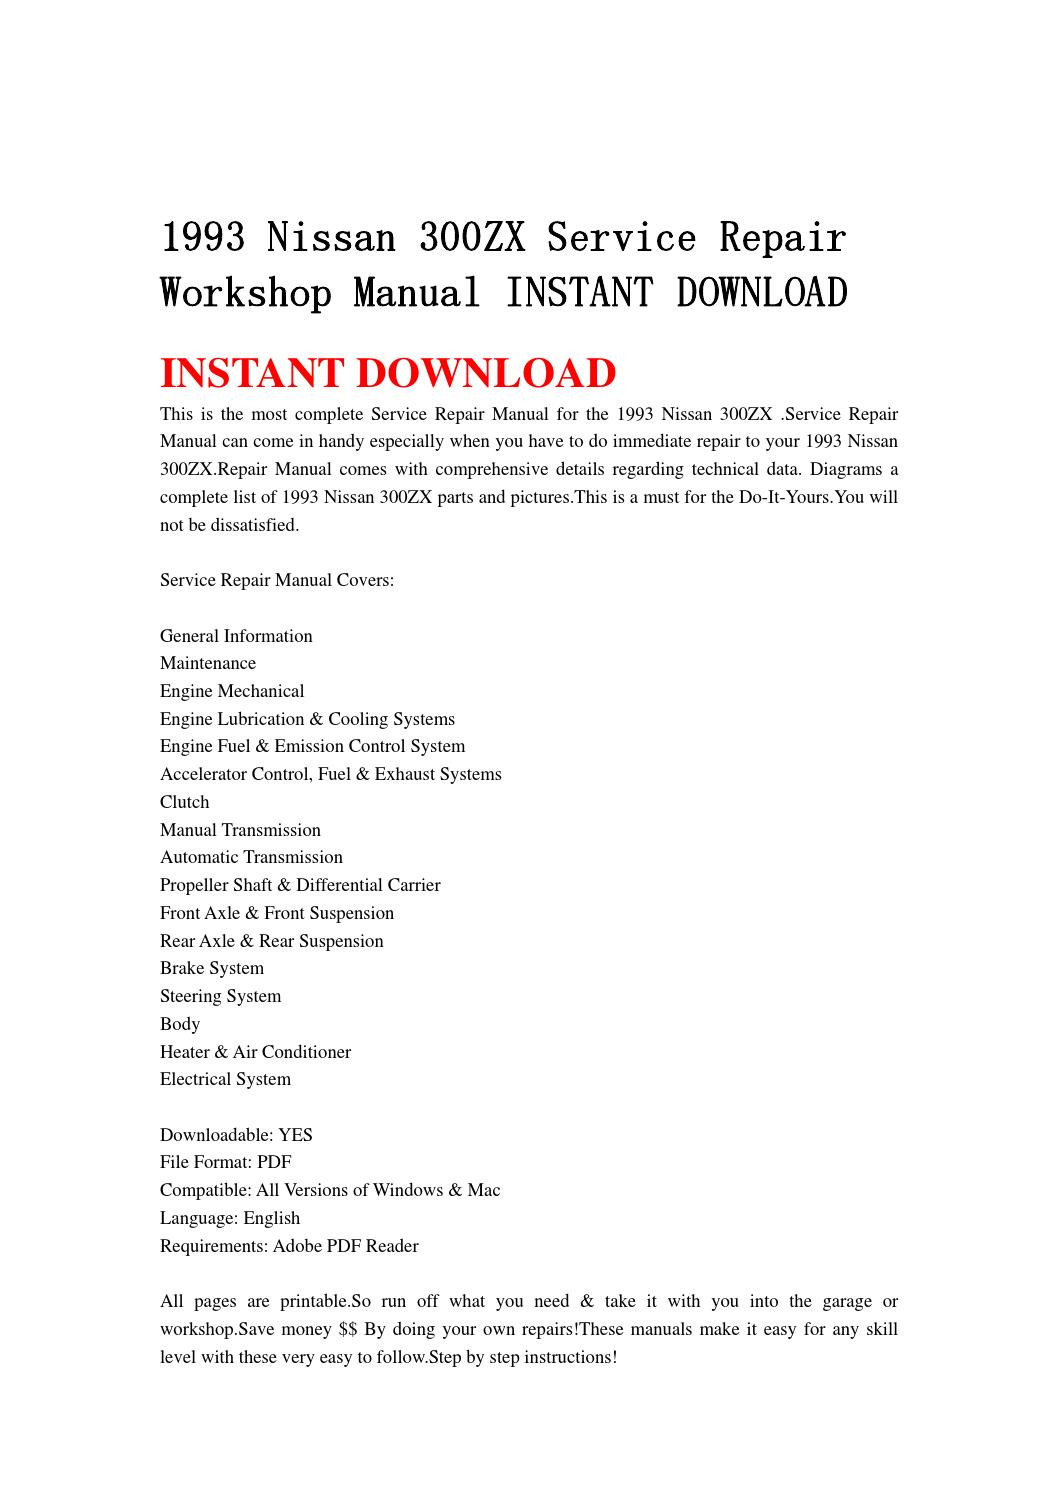 1990 Nissan 300zx Service Manual And Wiring Diagram Free Pdf Manual